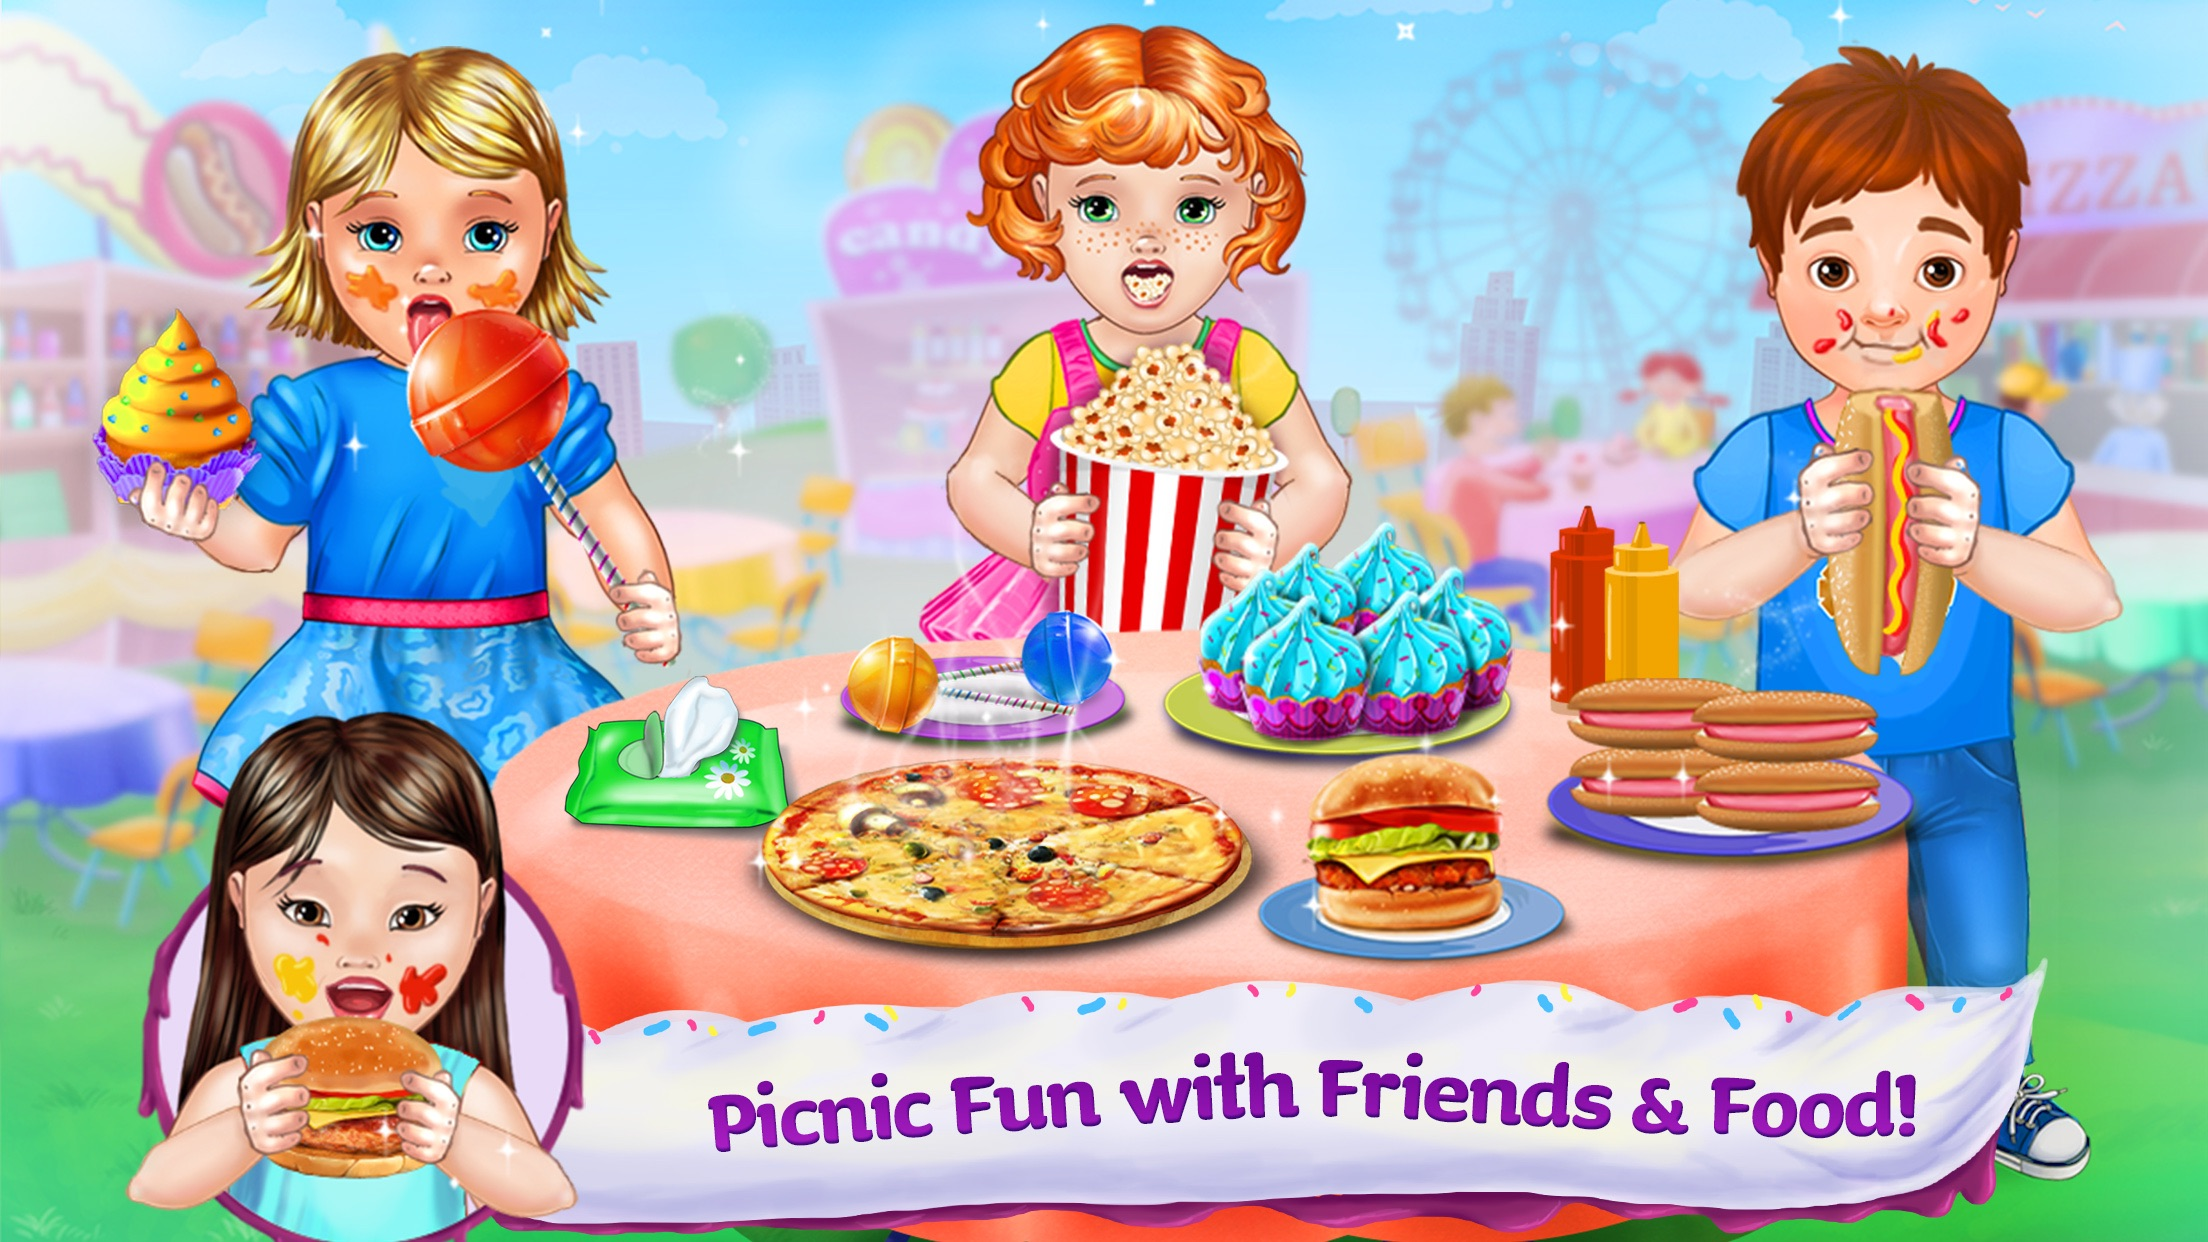 Baby Food Fair - Make, Eat, Play - Have Fun! Screenshot